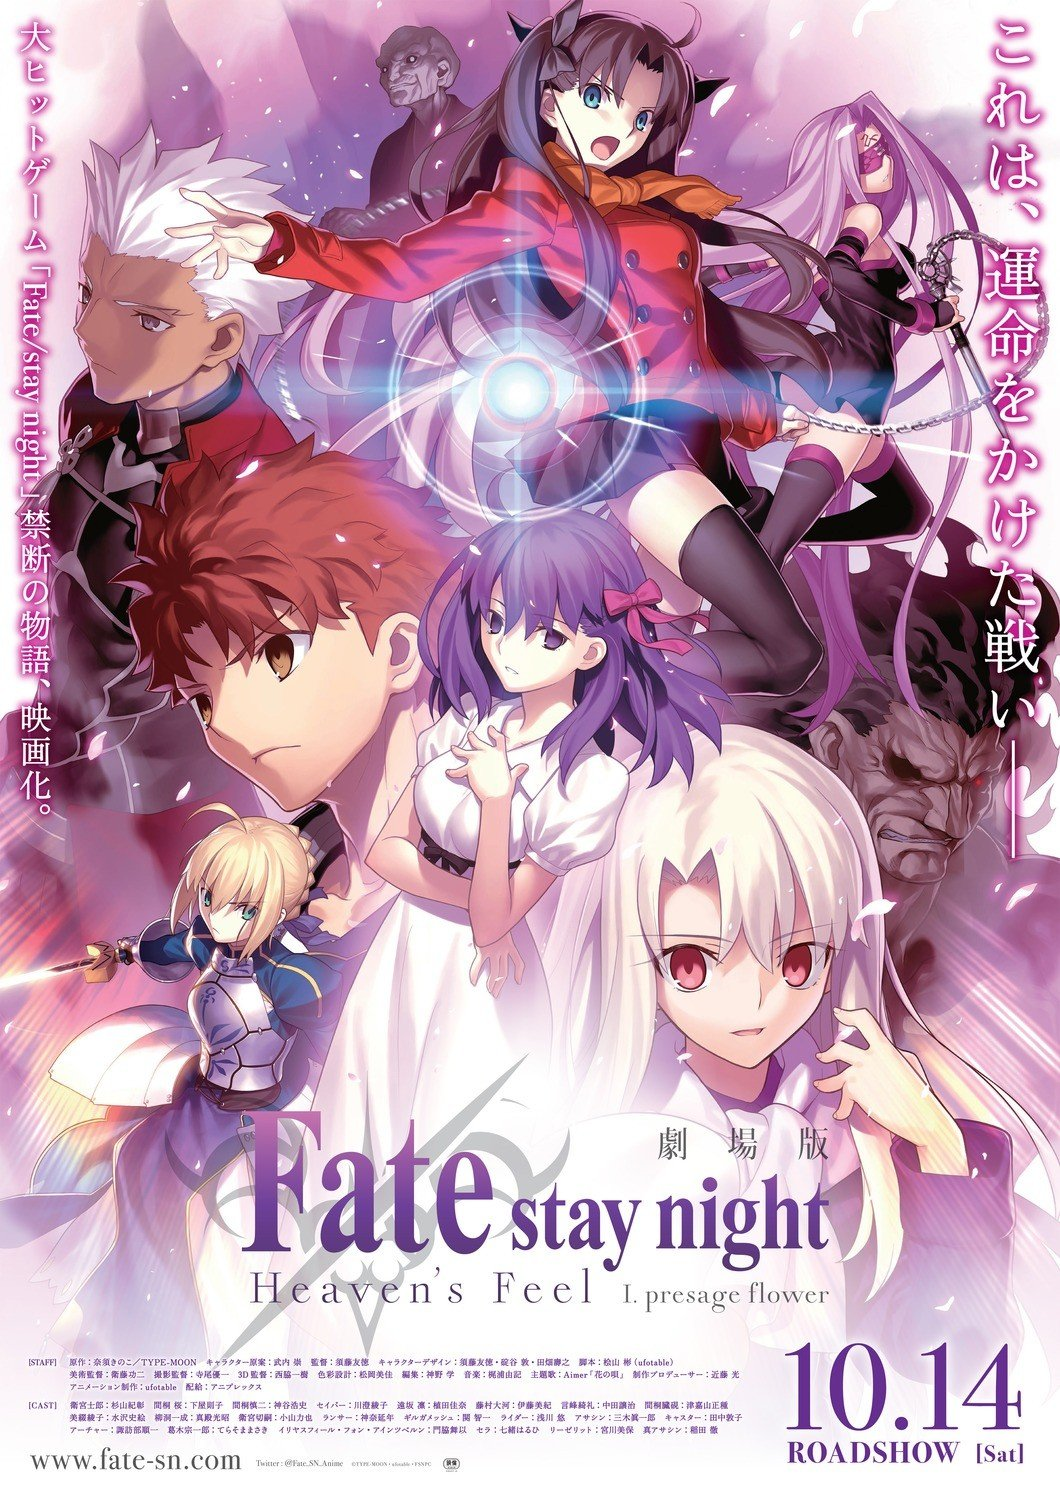 Fate/stay night [Heaven's Feel] I.presage flower